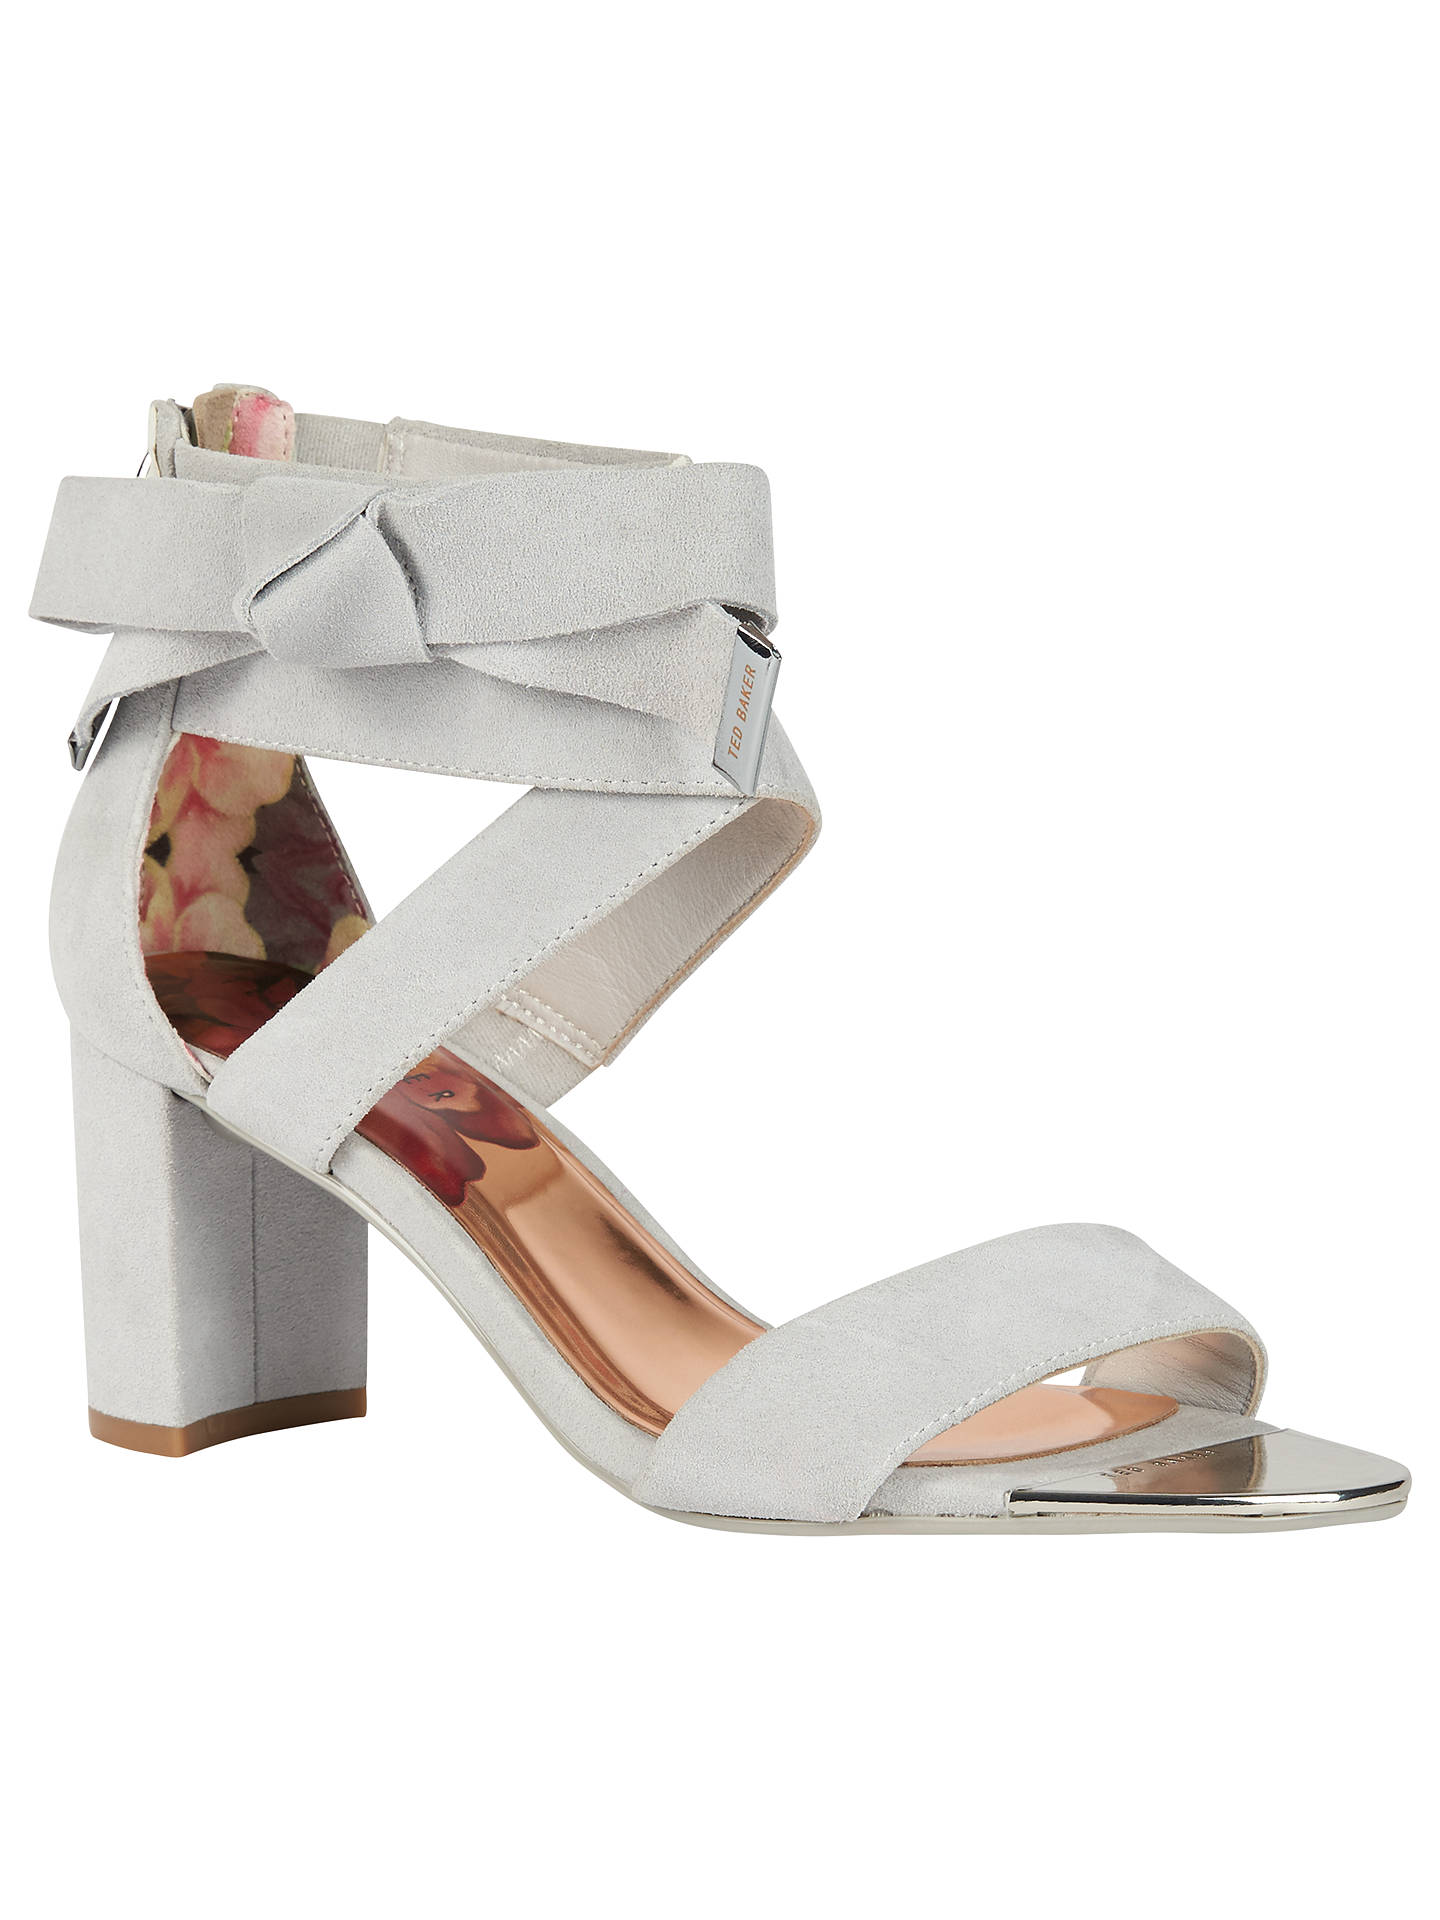 3490b69f4 Ted Baker Noxen Cross Strap Bow Sandals at John Lewis   Partners